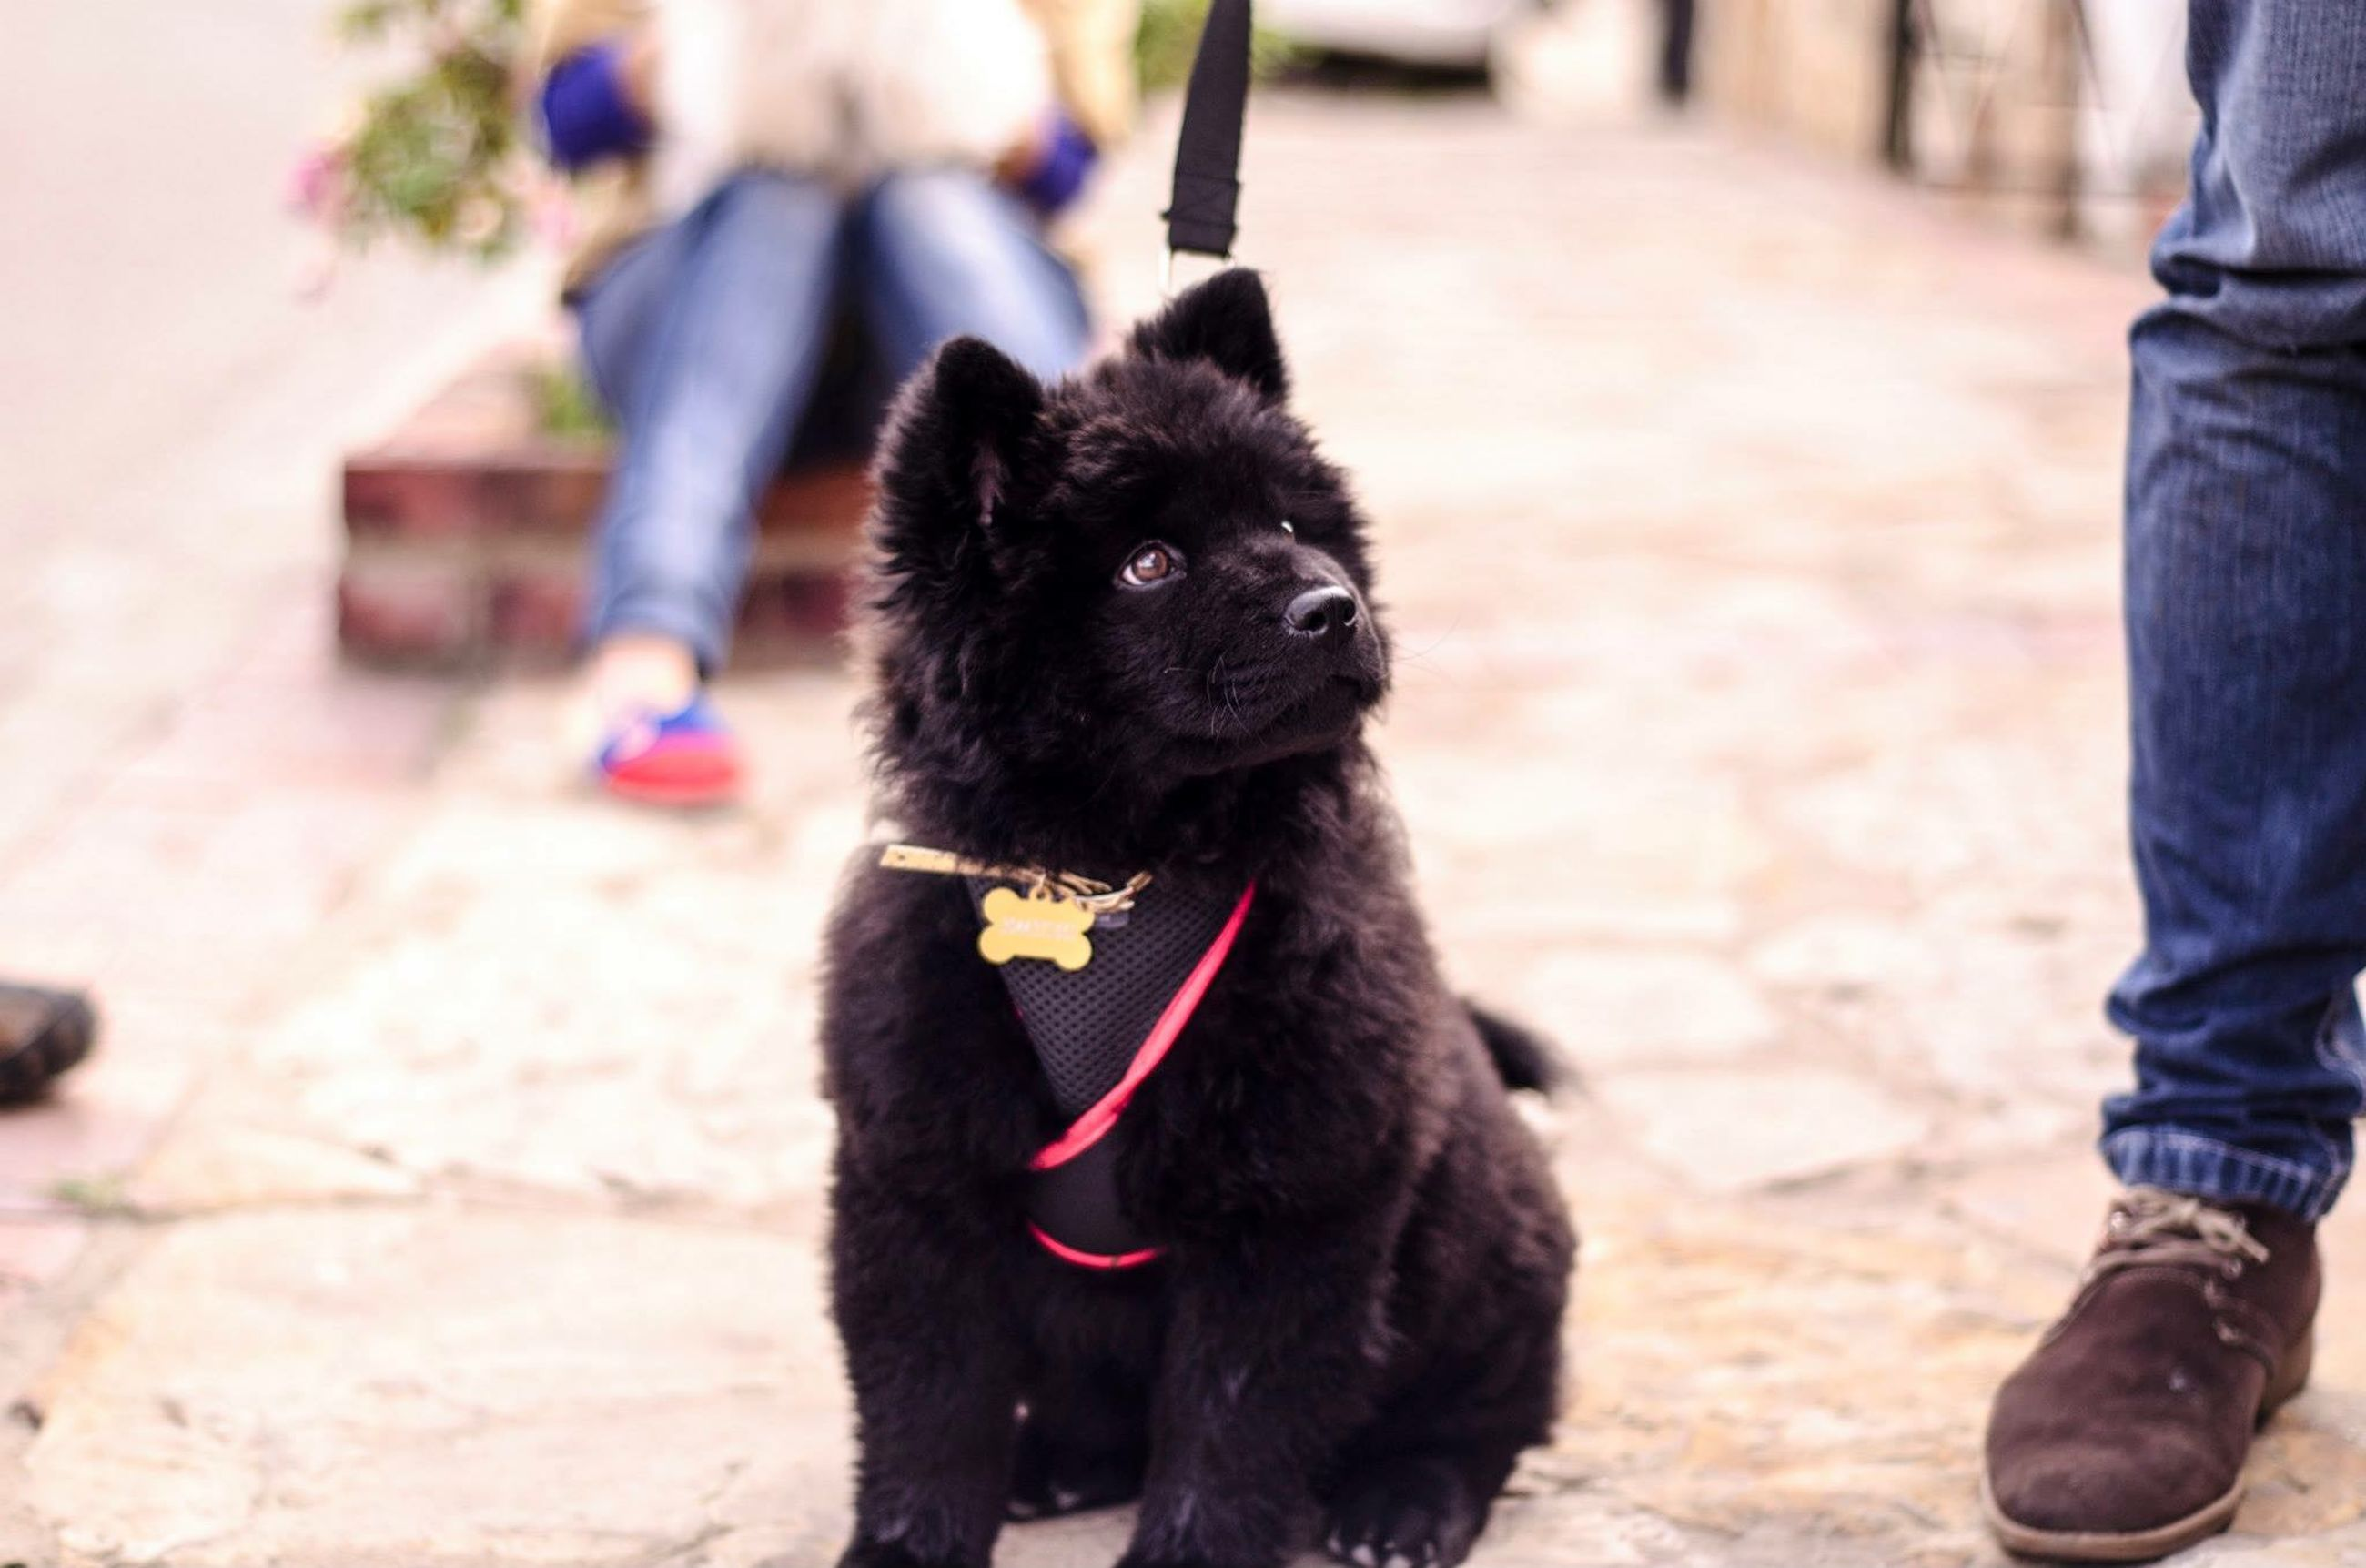 domestic animals, animal themes, one animal, pets, mammal, dog, focus on foreground, black color, standing, street, walking, incidental people, sitting, looking away, pet collar, domestic cat, outdoors, pet owner